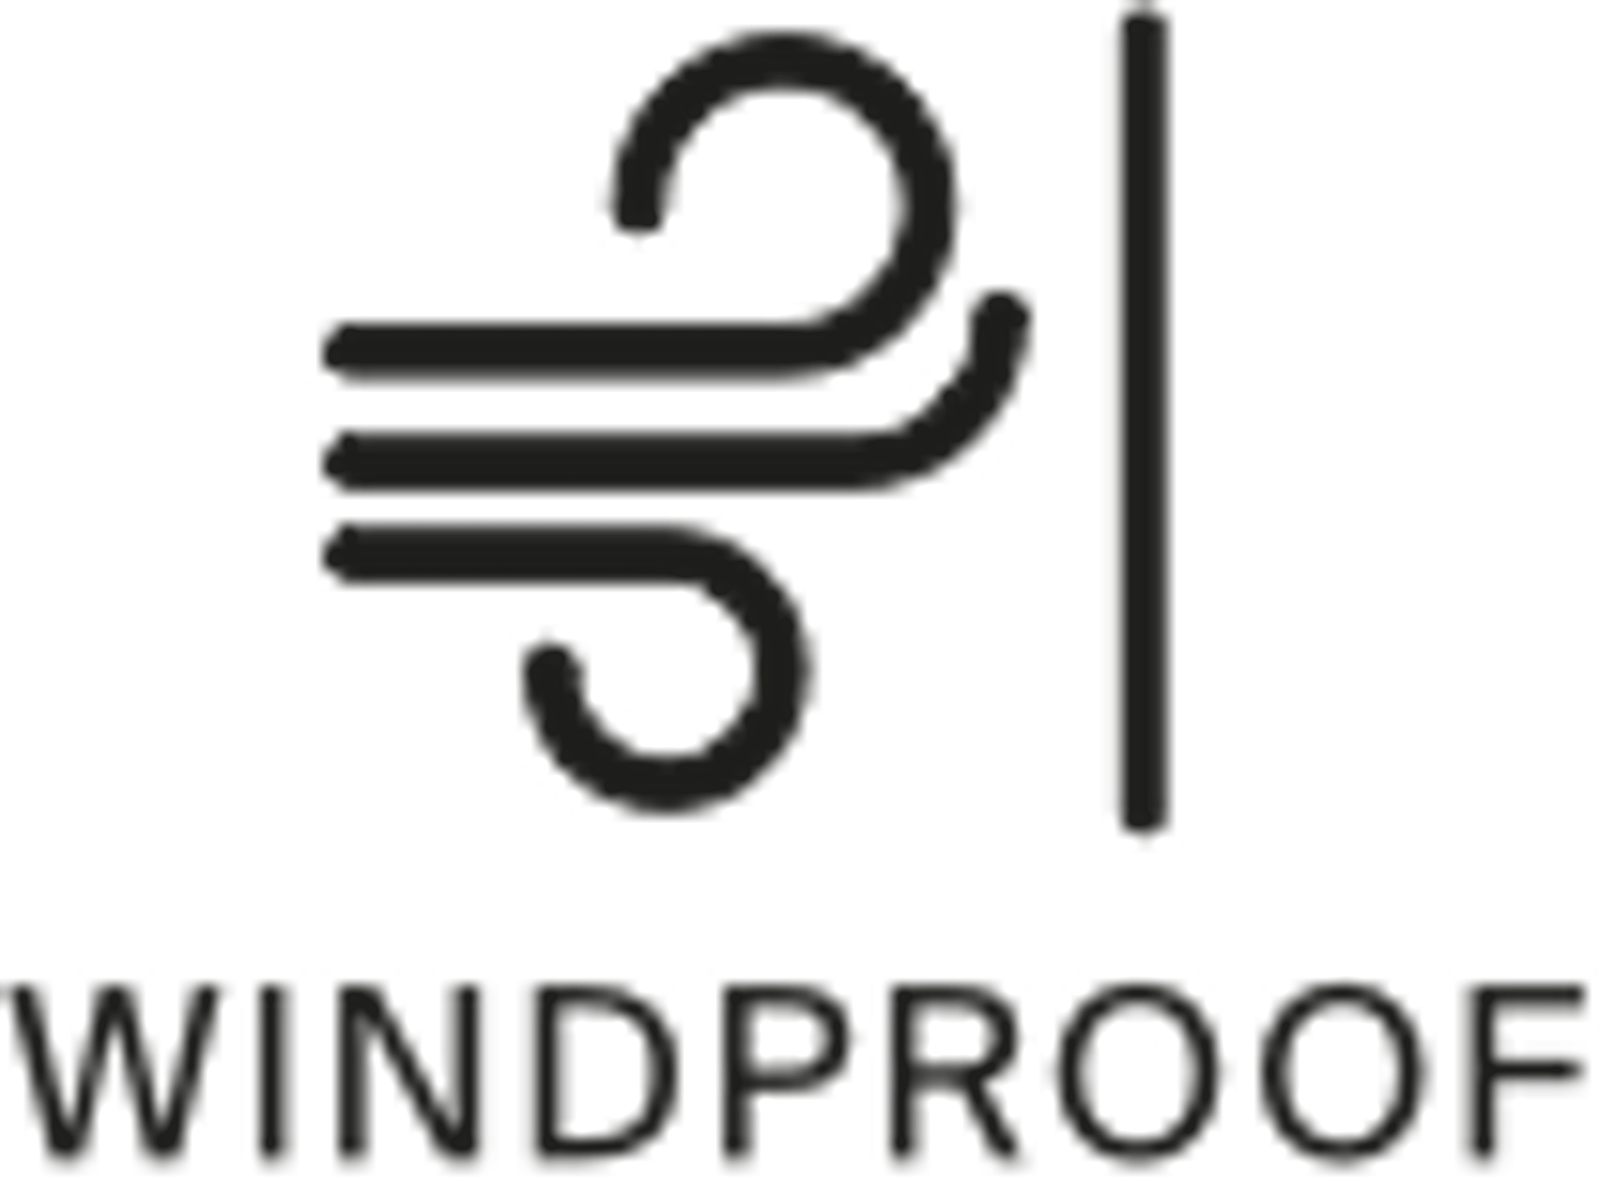 Windproof certification